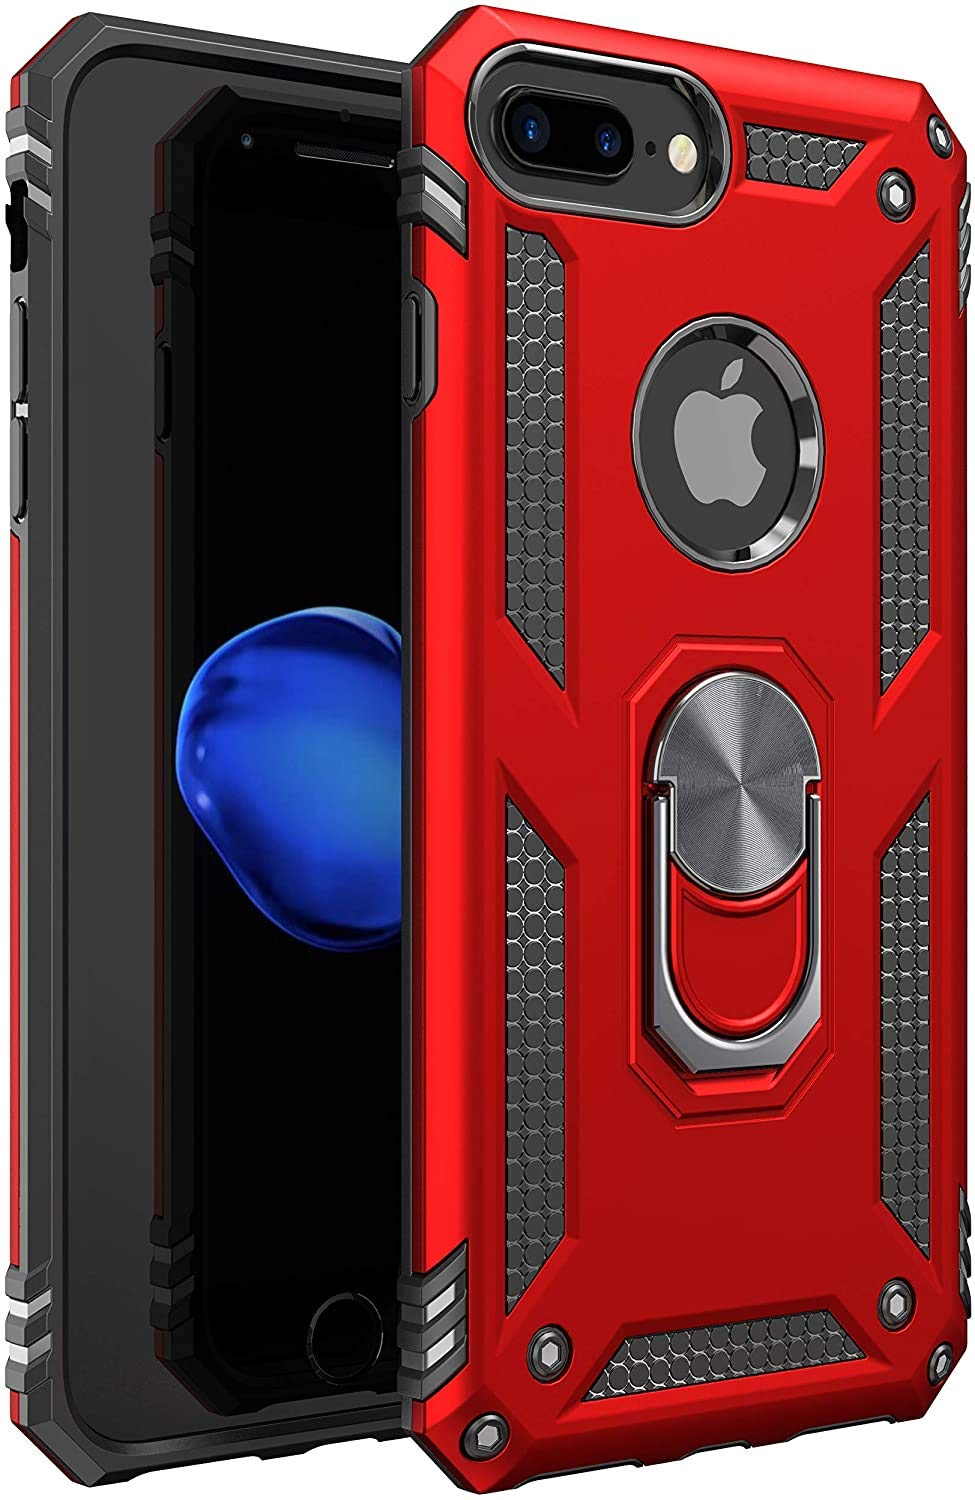 Amuoc Compatible with iPhone 7 Plus Case , 8 Plus Case [ Military Grade ] 15ft Drop Tested Protective Kickstand Case- Red